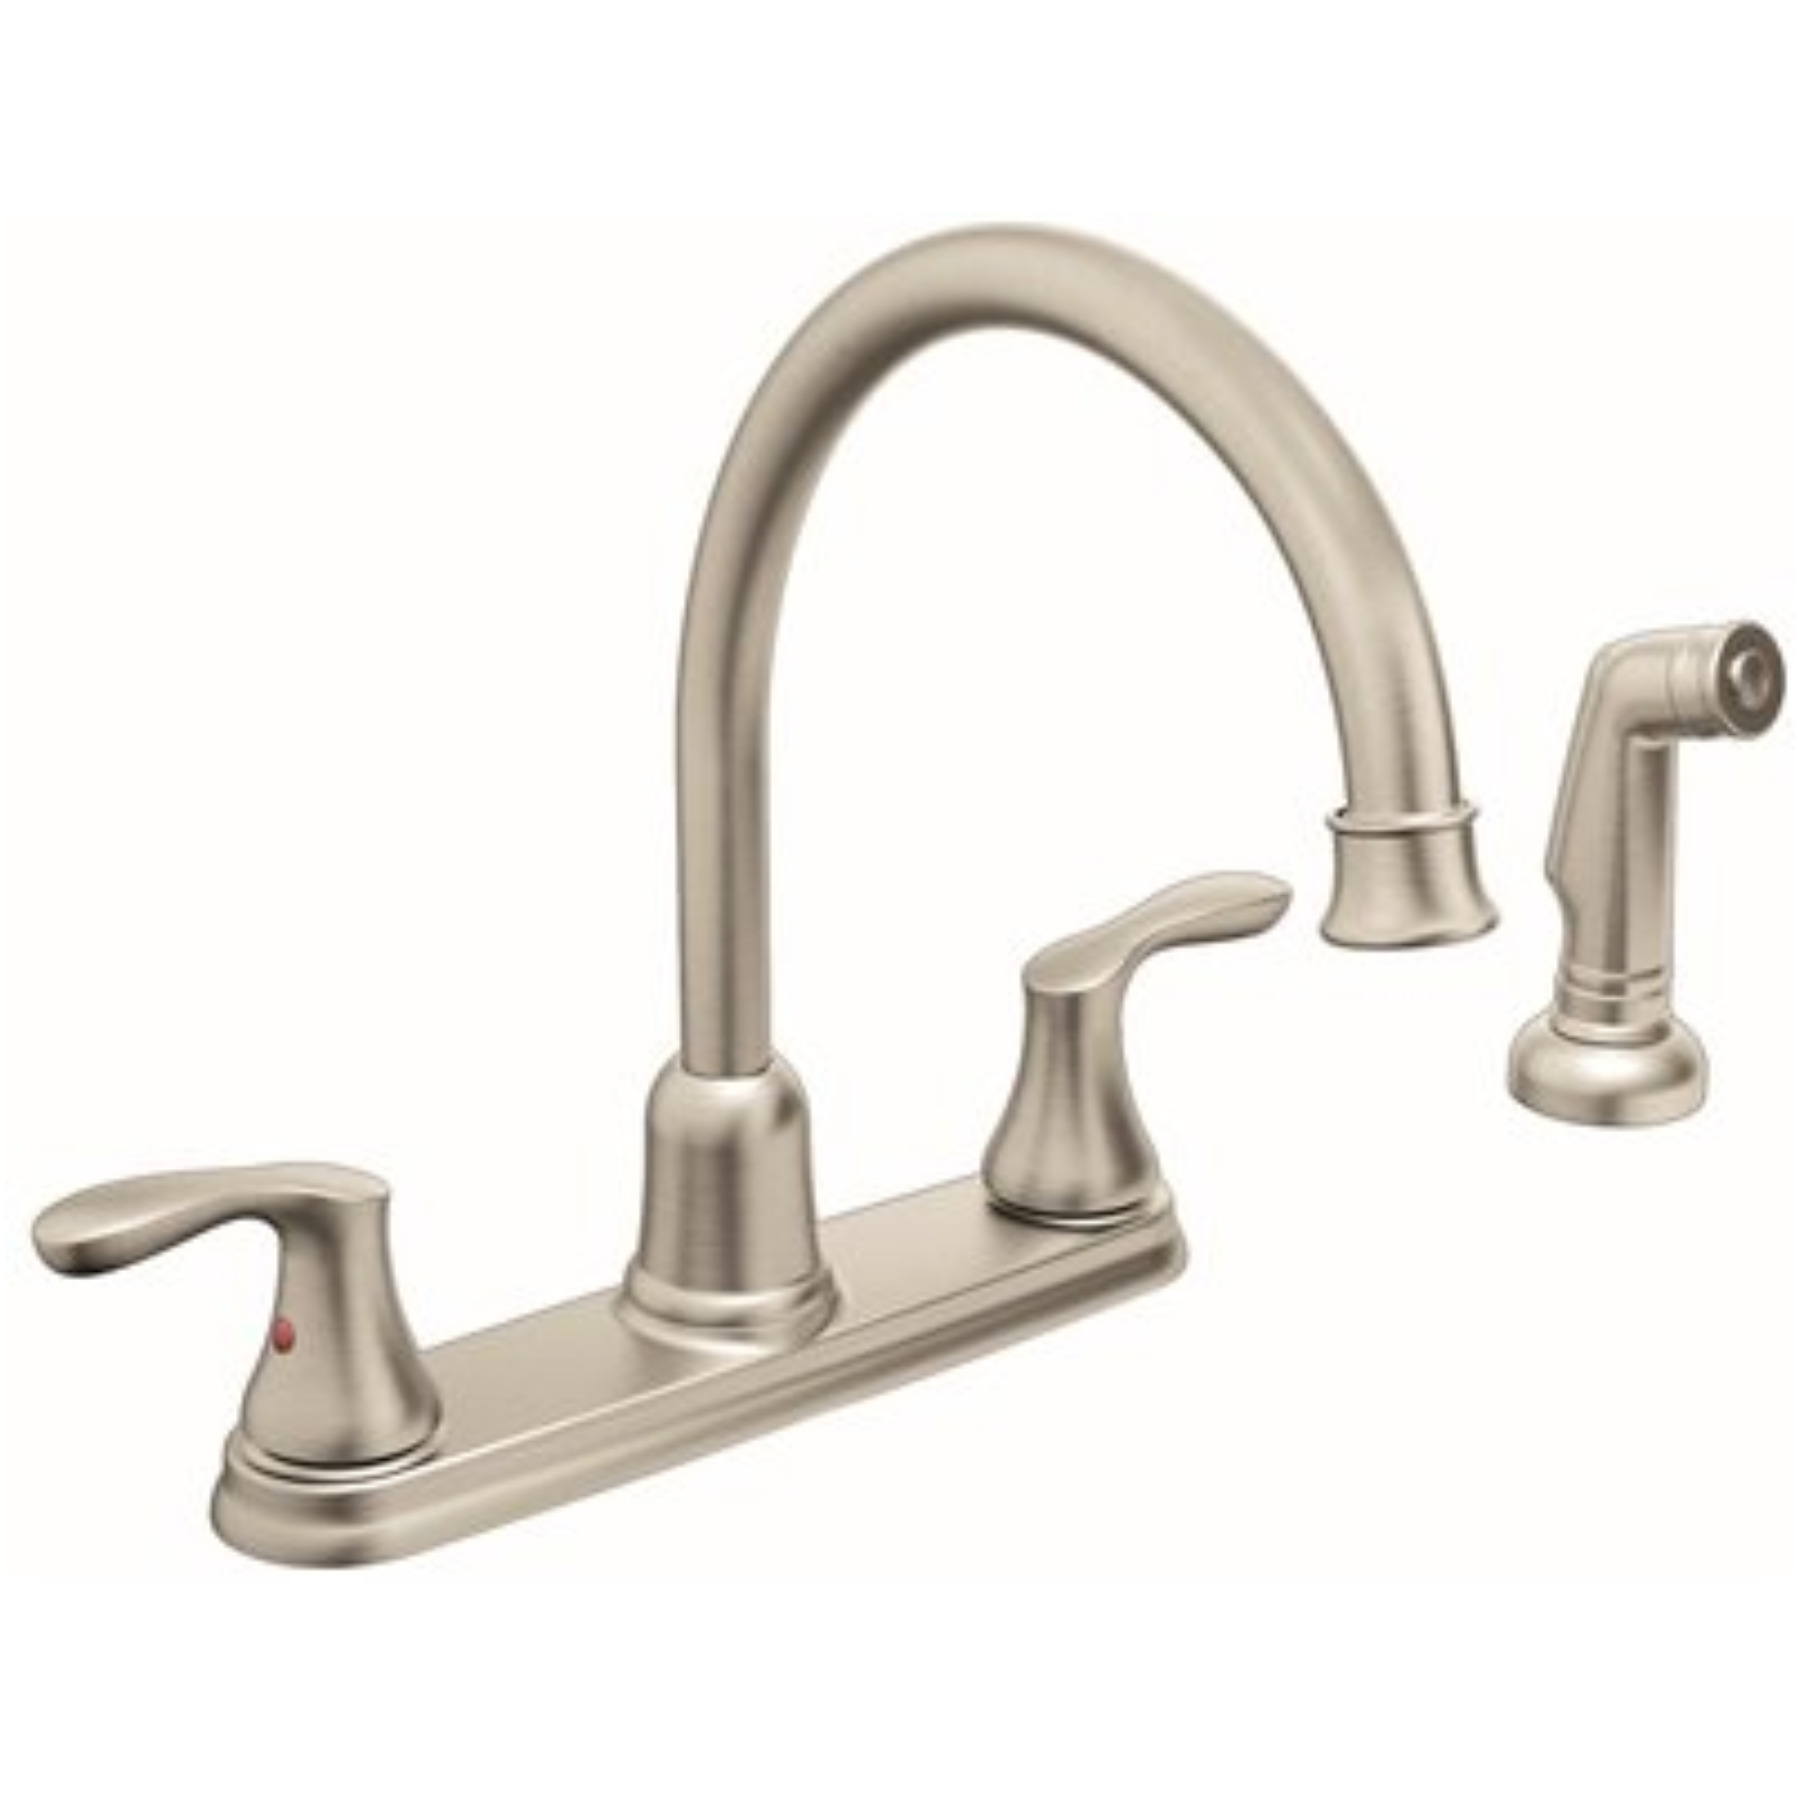 CORNERSTONE� HIGH ARC KITCHEN FAUCET WITH TWO HANDLES AND SIDE SPRAY, CHROME